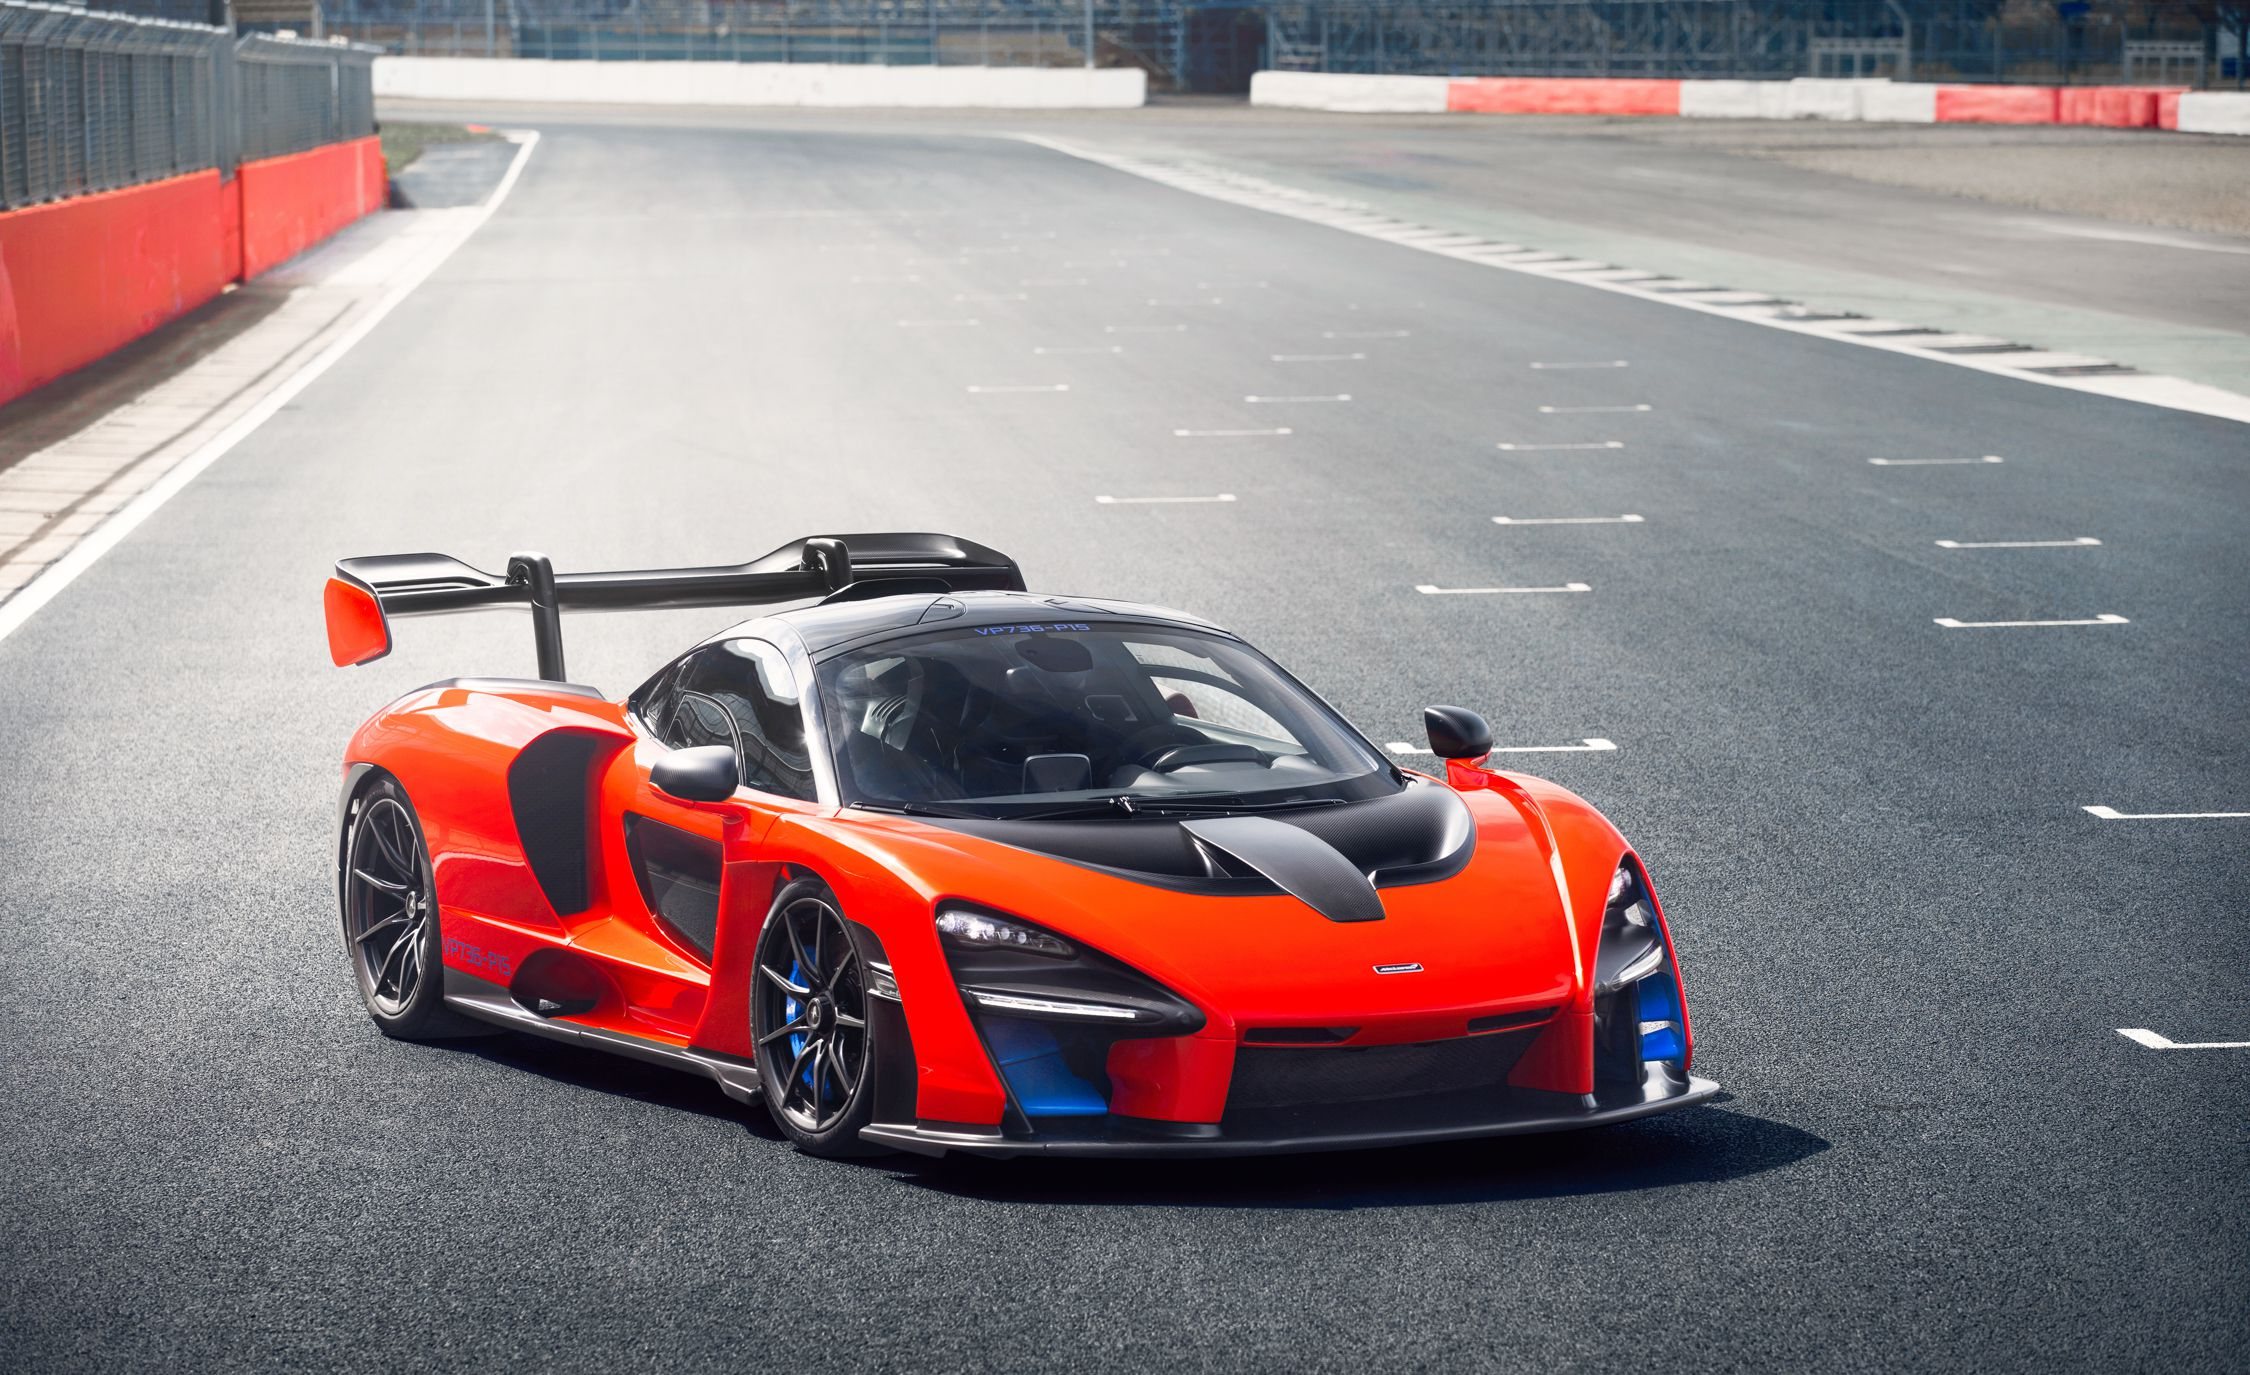 Top 10 Best Supercars & Exotics Of 2019